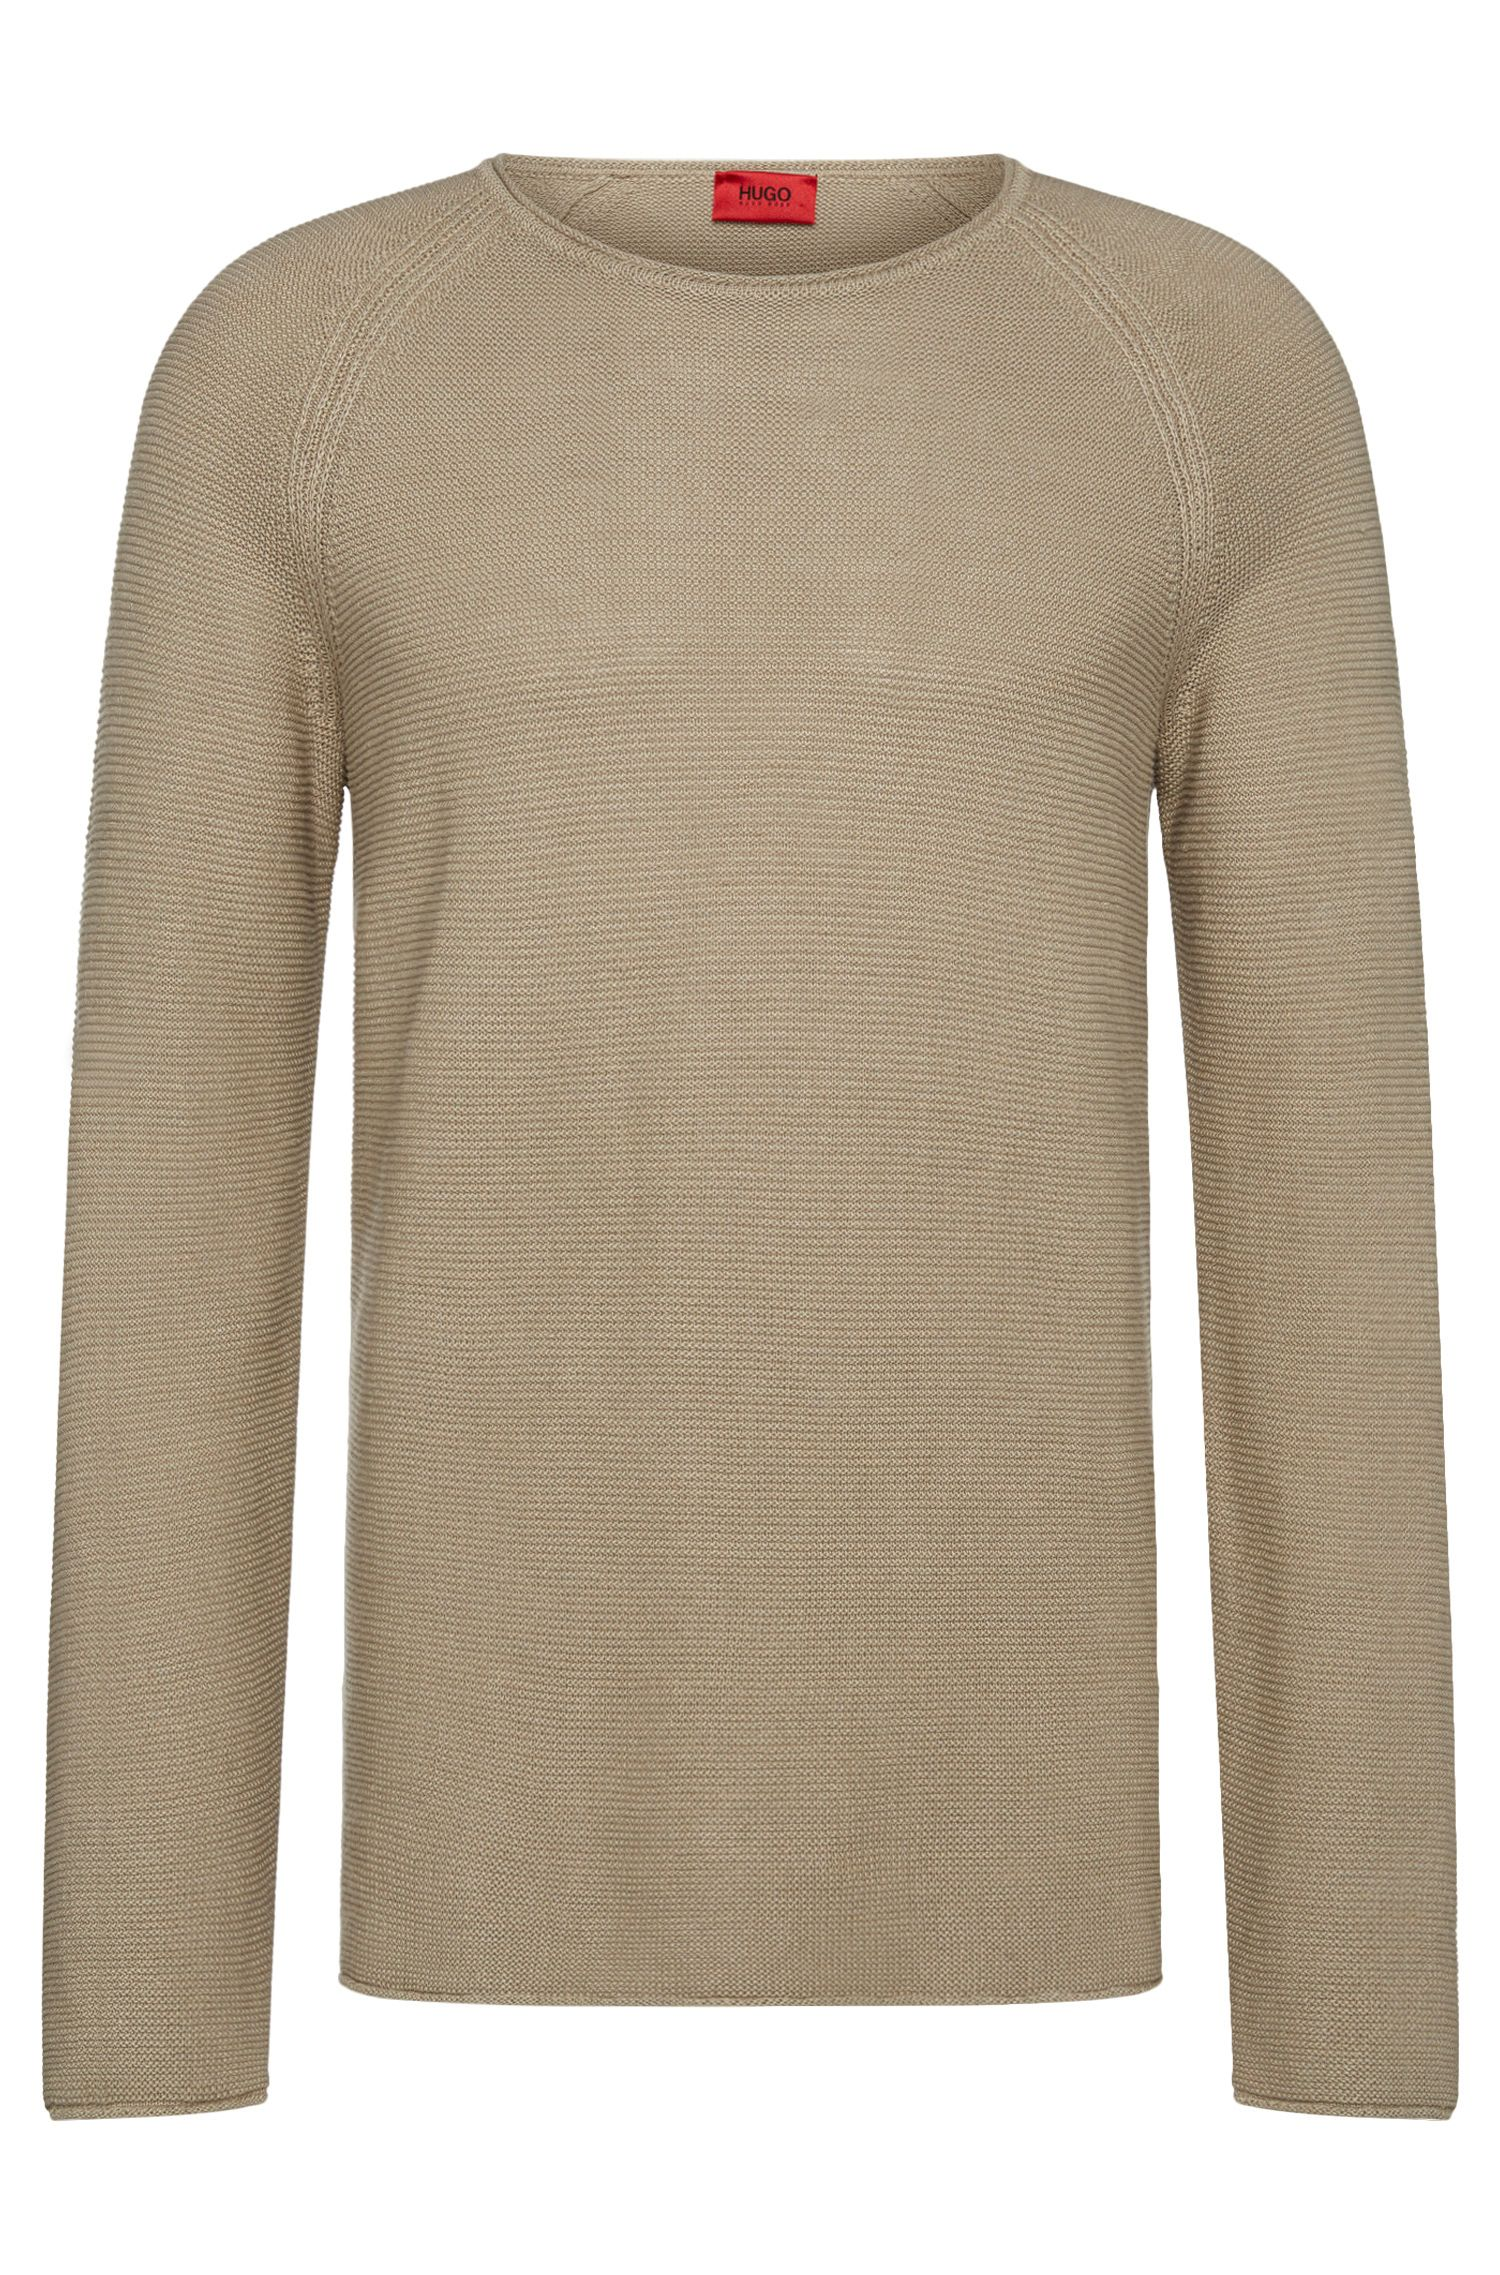 Relaxed-fit sweater in linen blend with cotton: 'Soler'